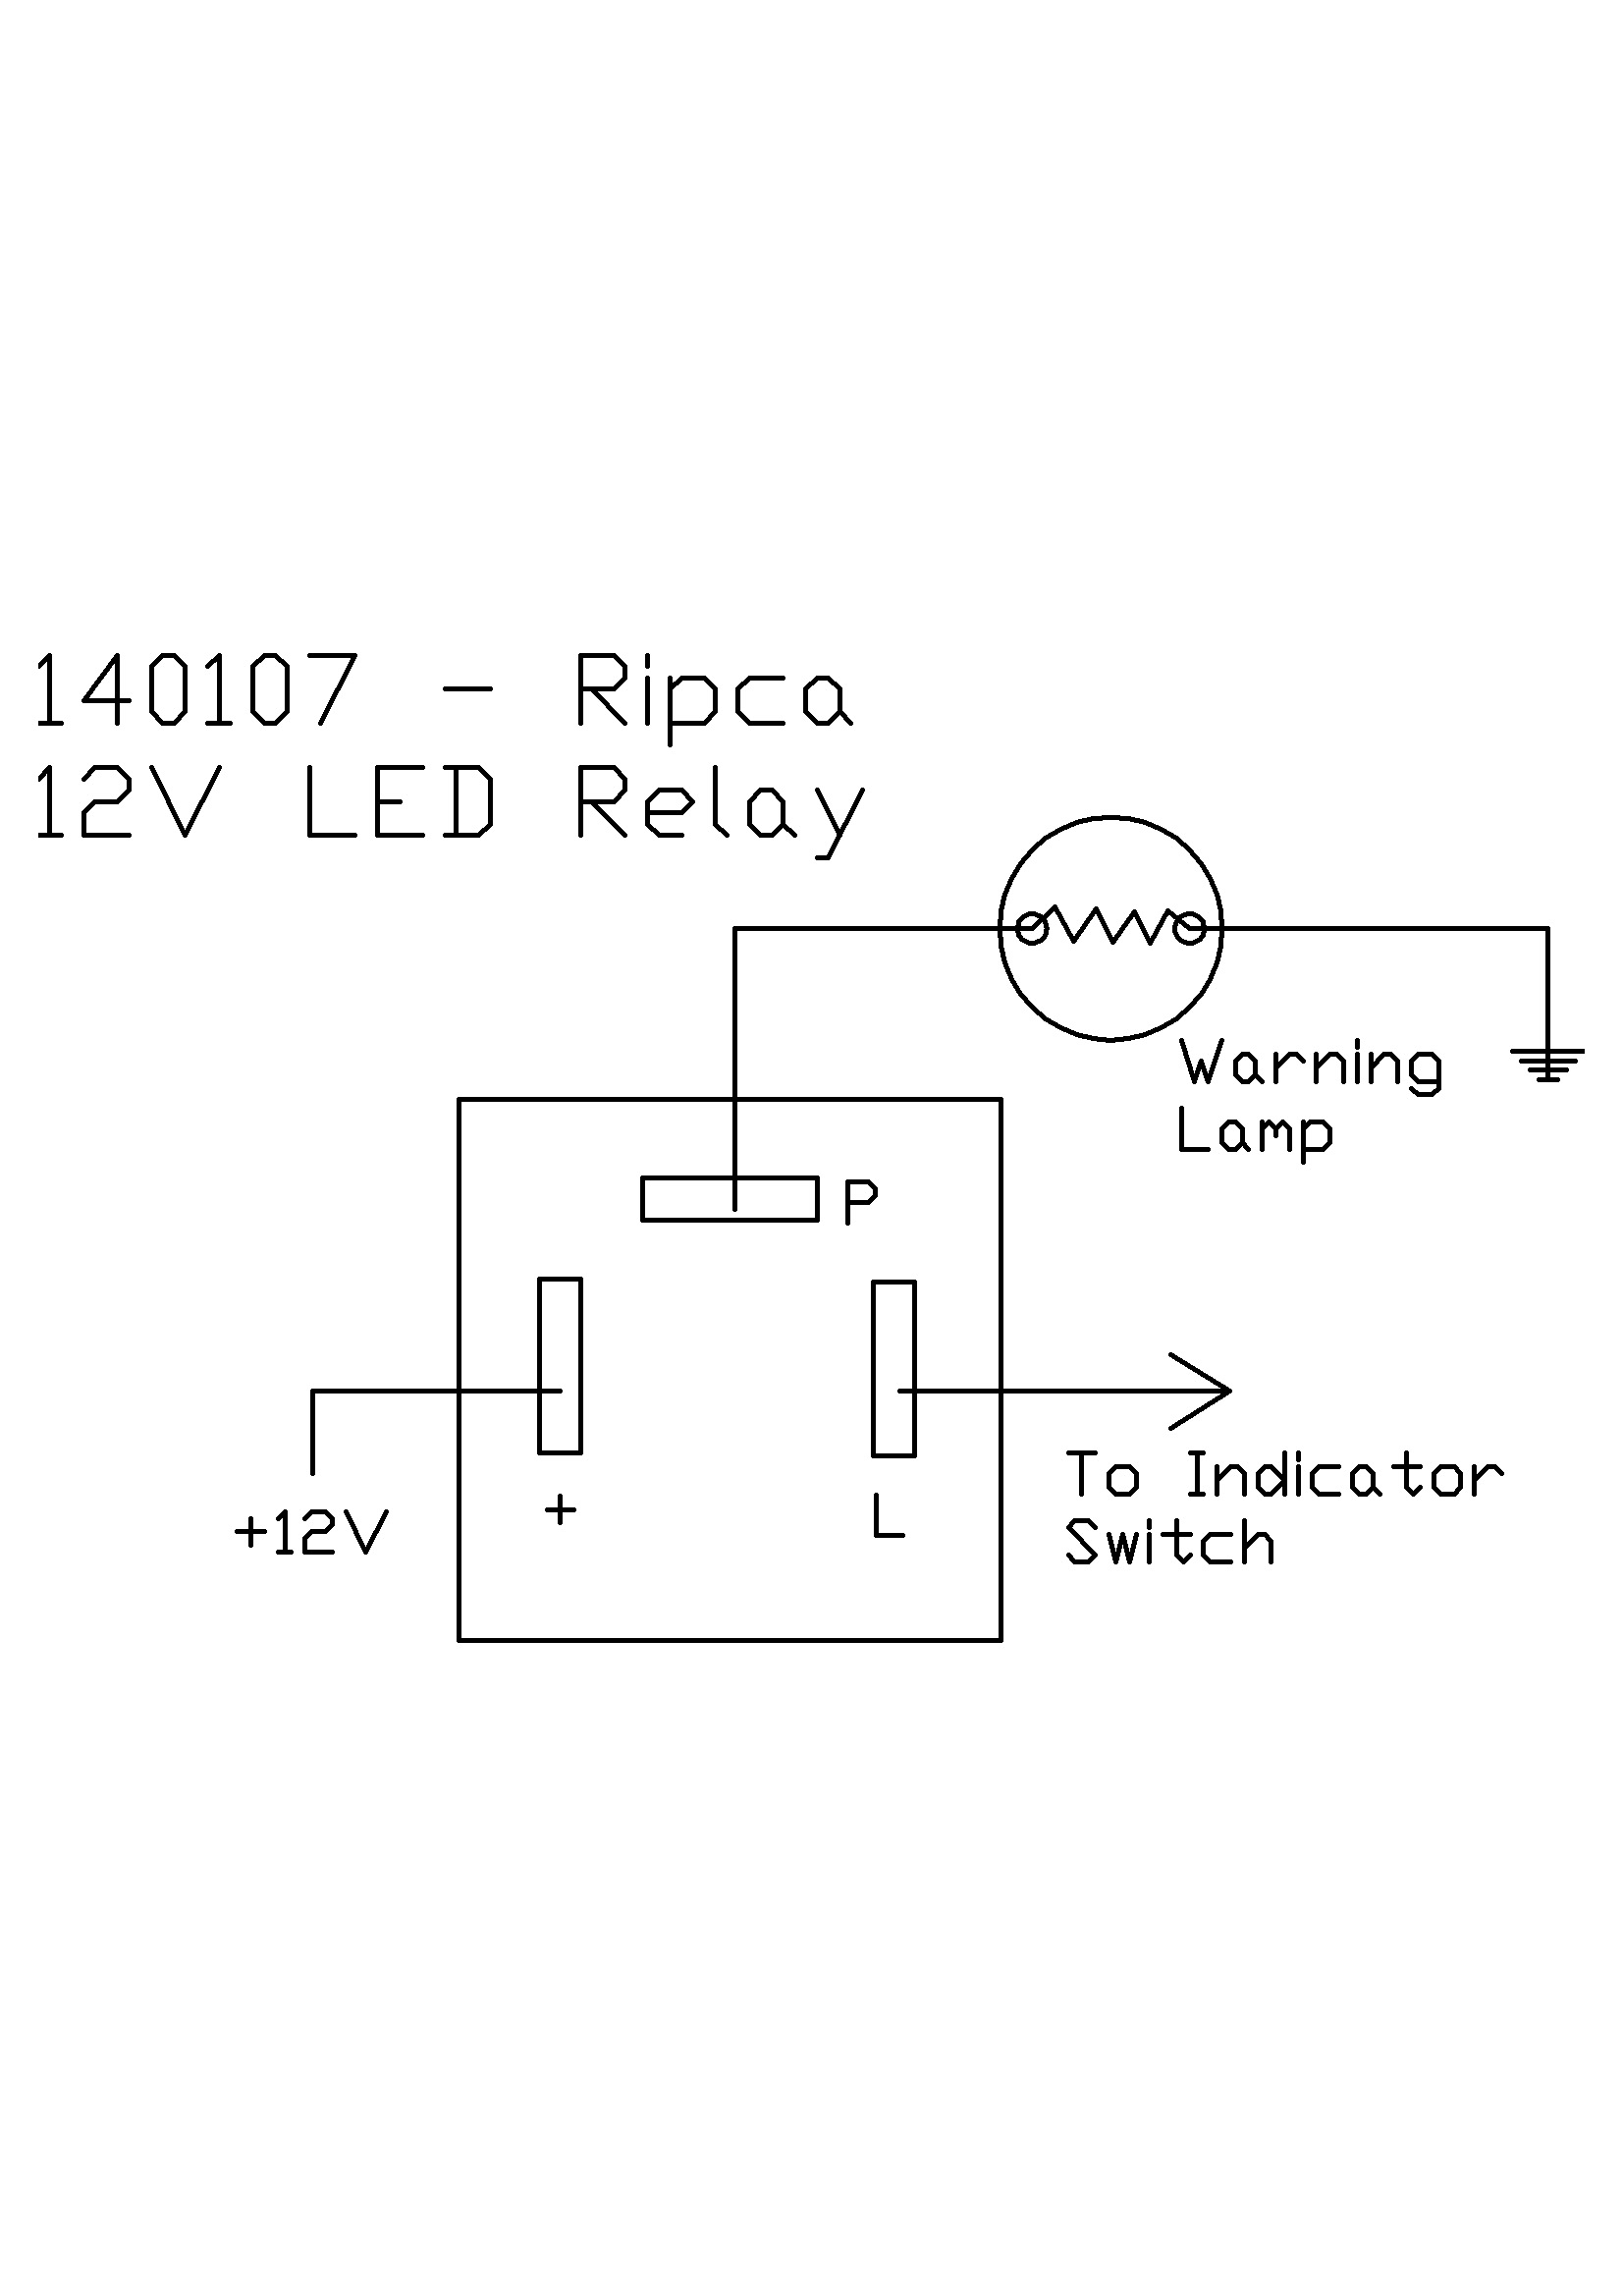 Electronic indicator flasher wiring electrical instruments by httpautoelectricsuppliesf ripcag asfbconference2016 Image collections